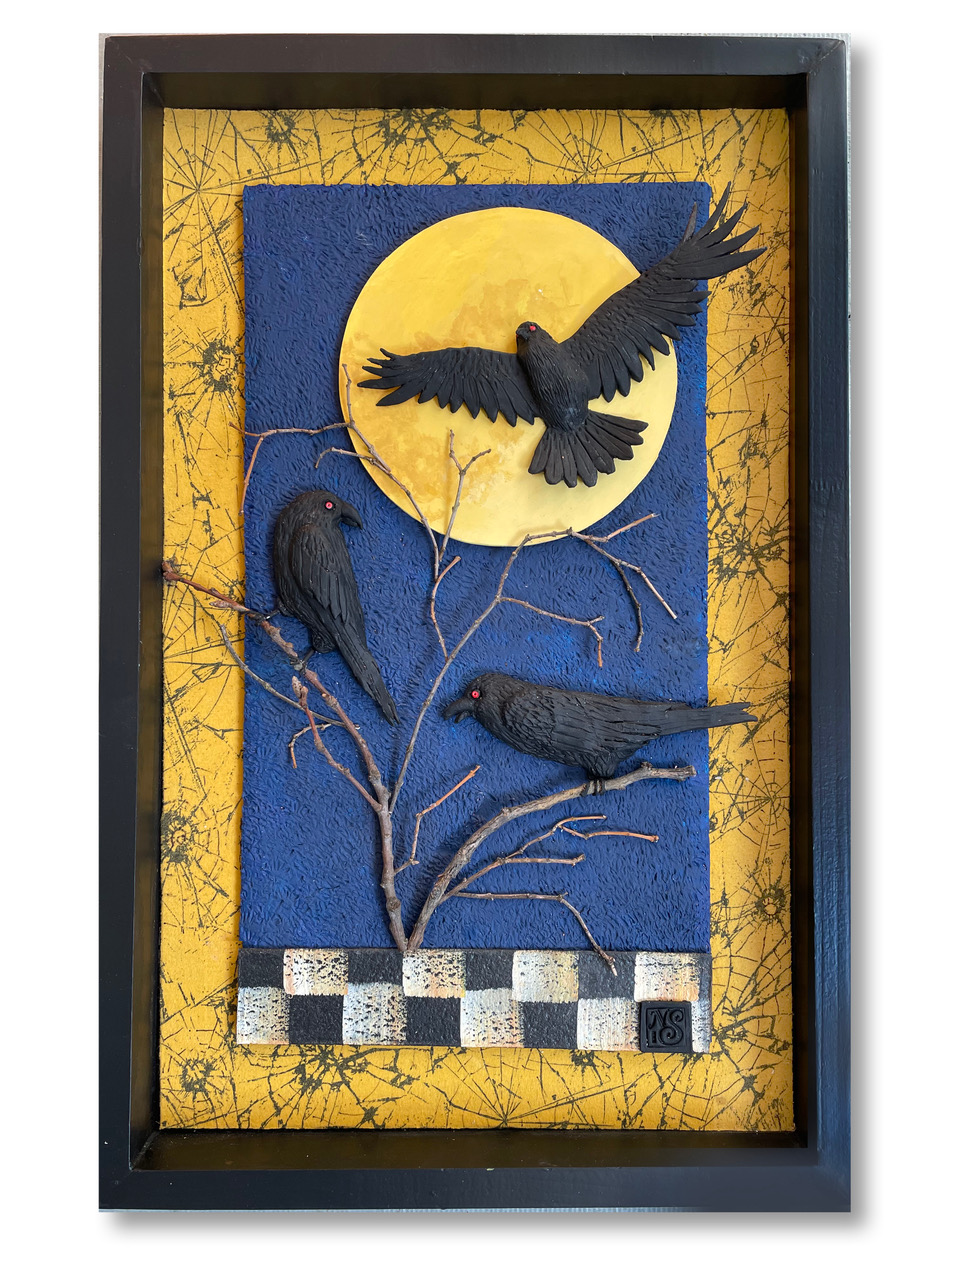 A Murder of Crows, by Nancy Sterling